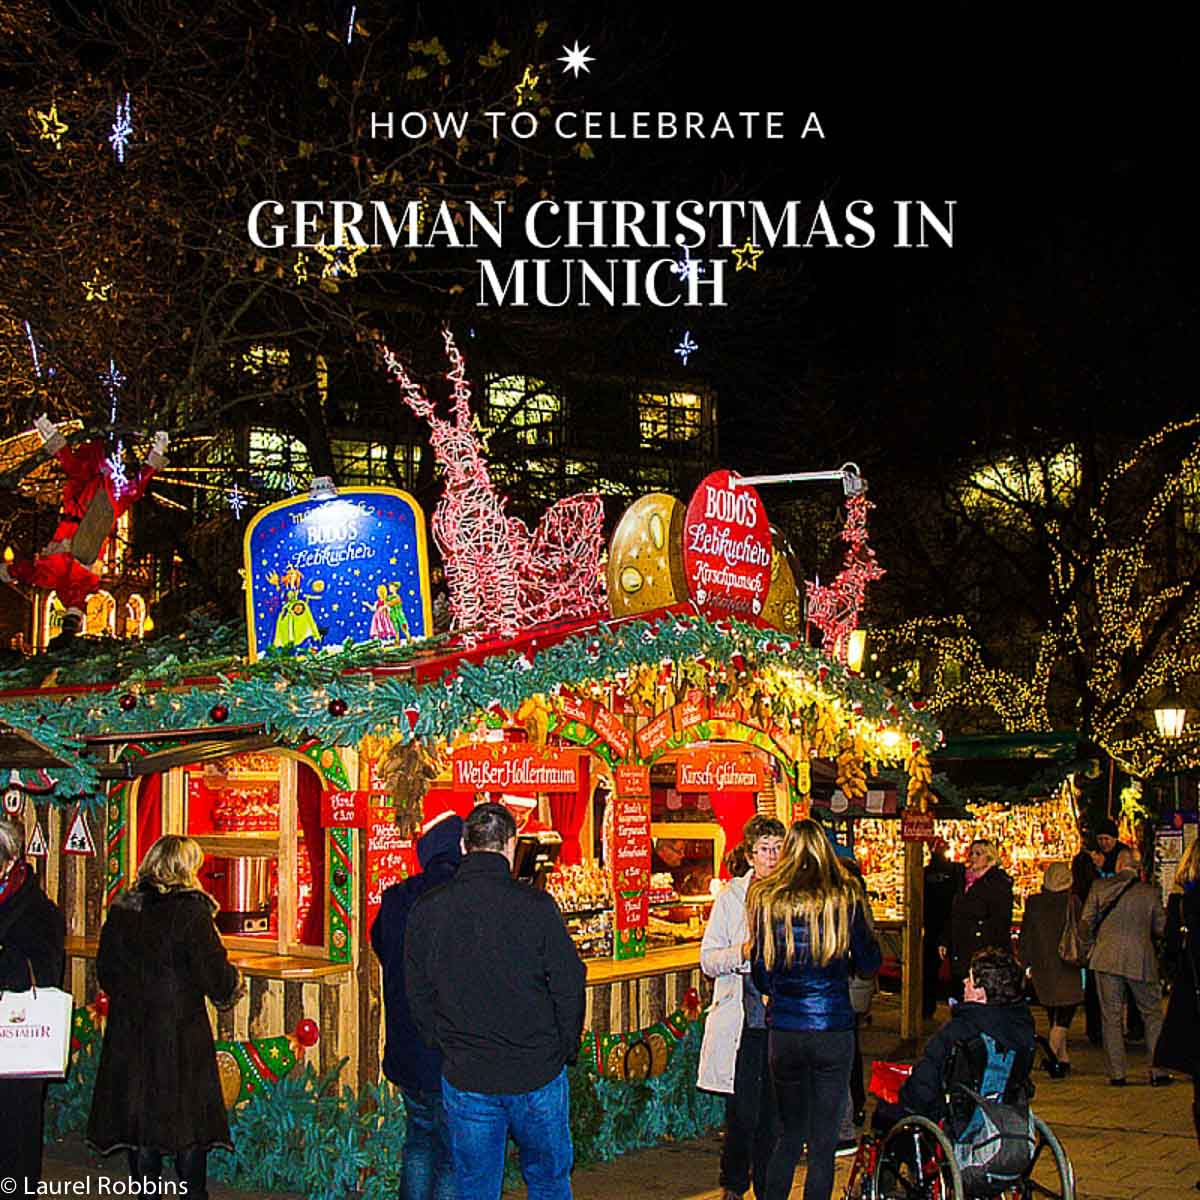 Munich Christmas Market.How To Celebrate A German Christmas In Munich